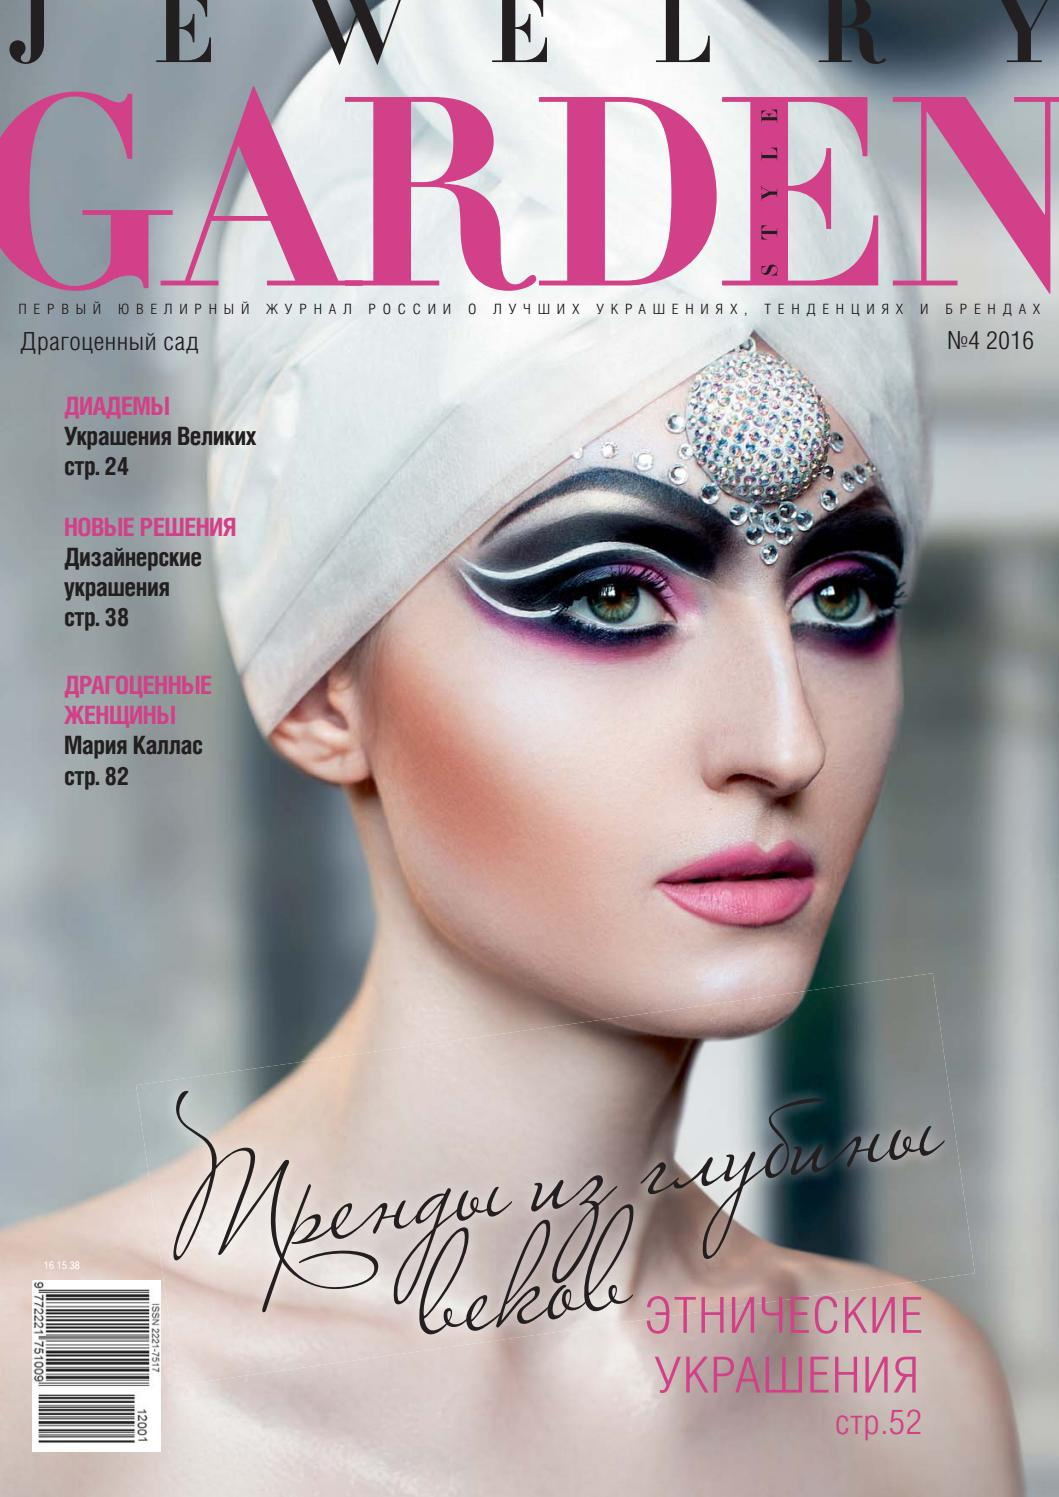 0348de45e JEWELRY GARDEN № 4, 2016 by Jewelry Garden Magazine - issuu